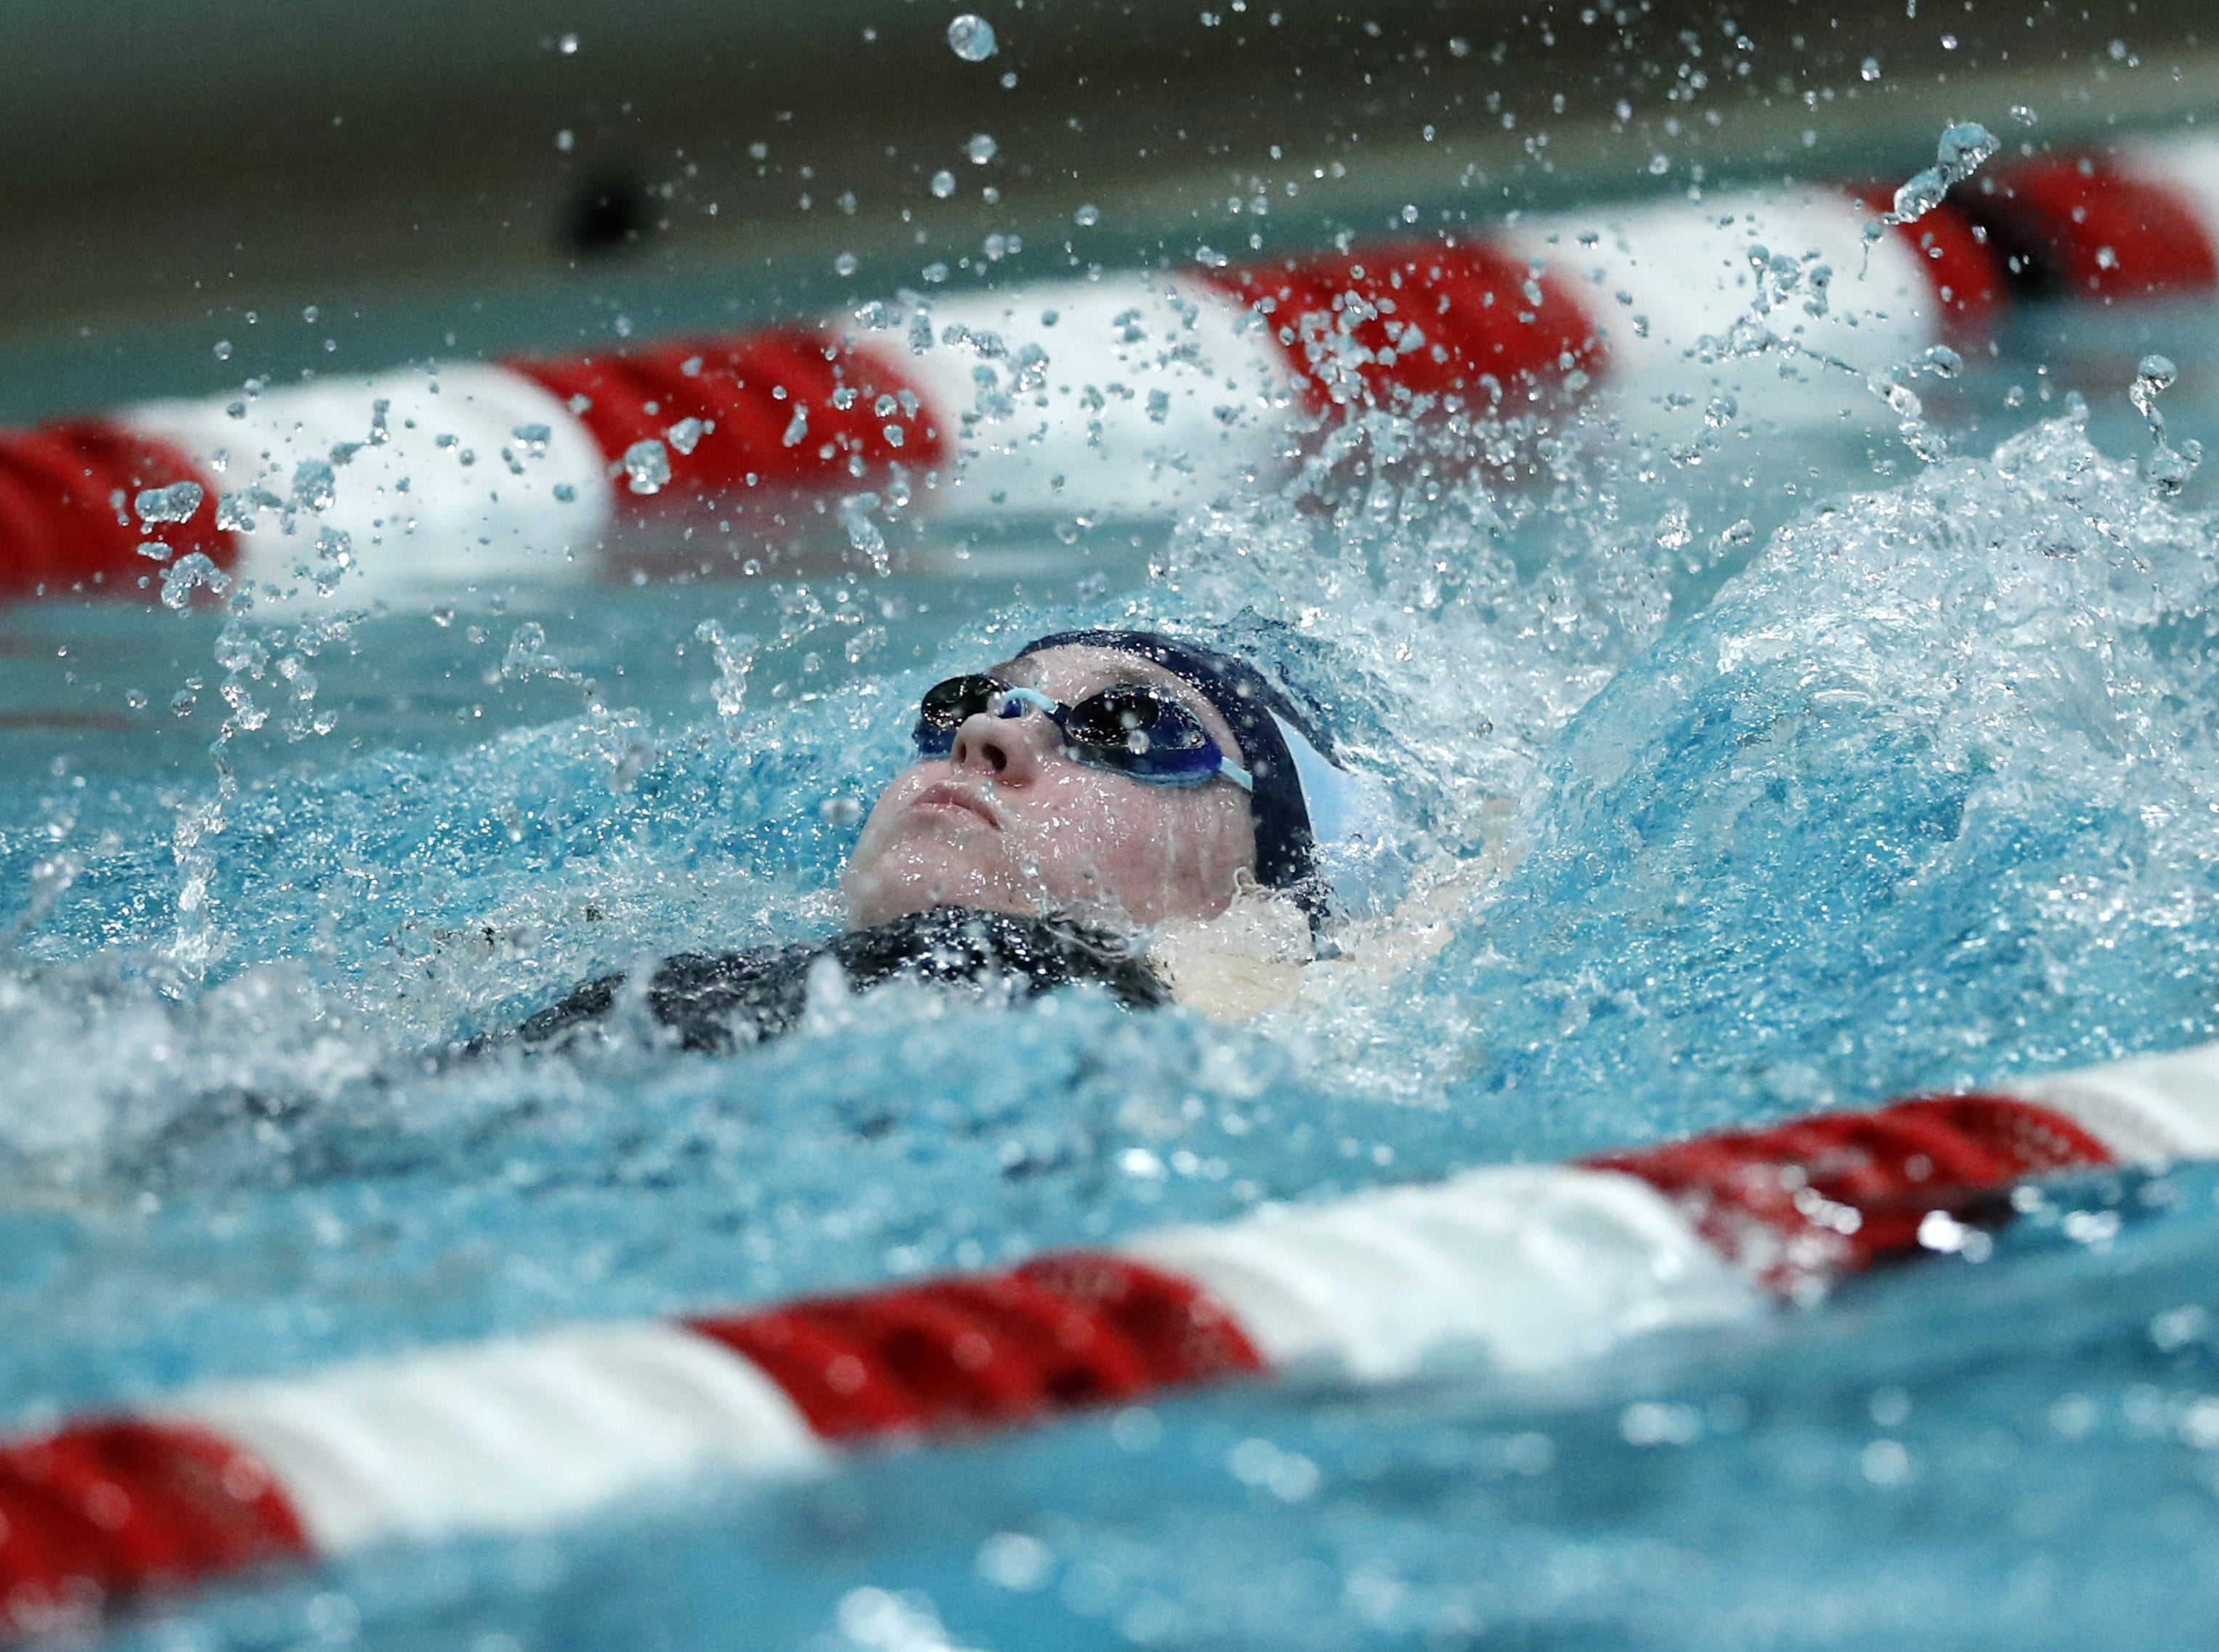 Bay PortÕs Riley Melendy races in the 200 yard individual medley during the WIAA Division 1 State Swimming and Diving meet Saturday, Nov. 10, 2018, at the UW Natatorium in Madison, Wis. Danny Damiani/USA TODAY NETWORK-Wisconsin